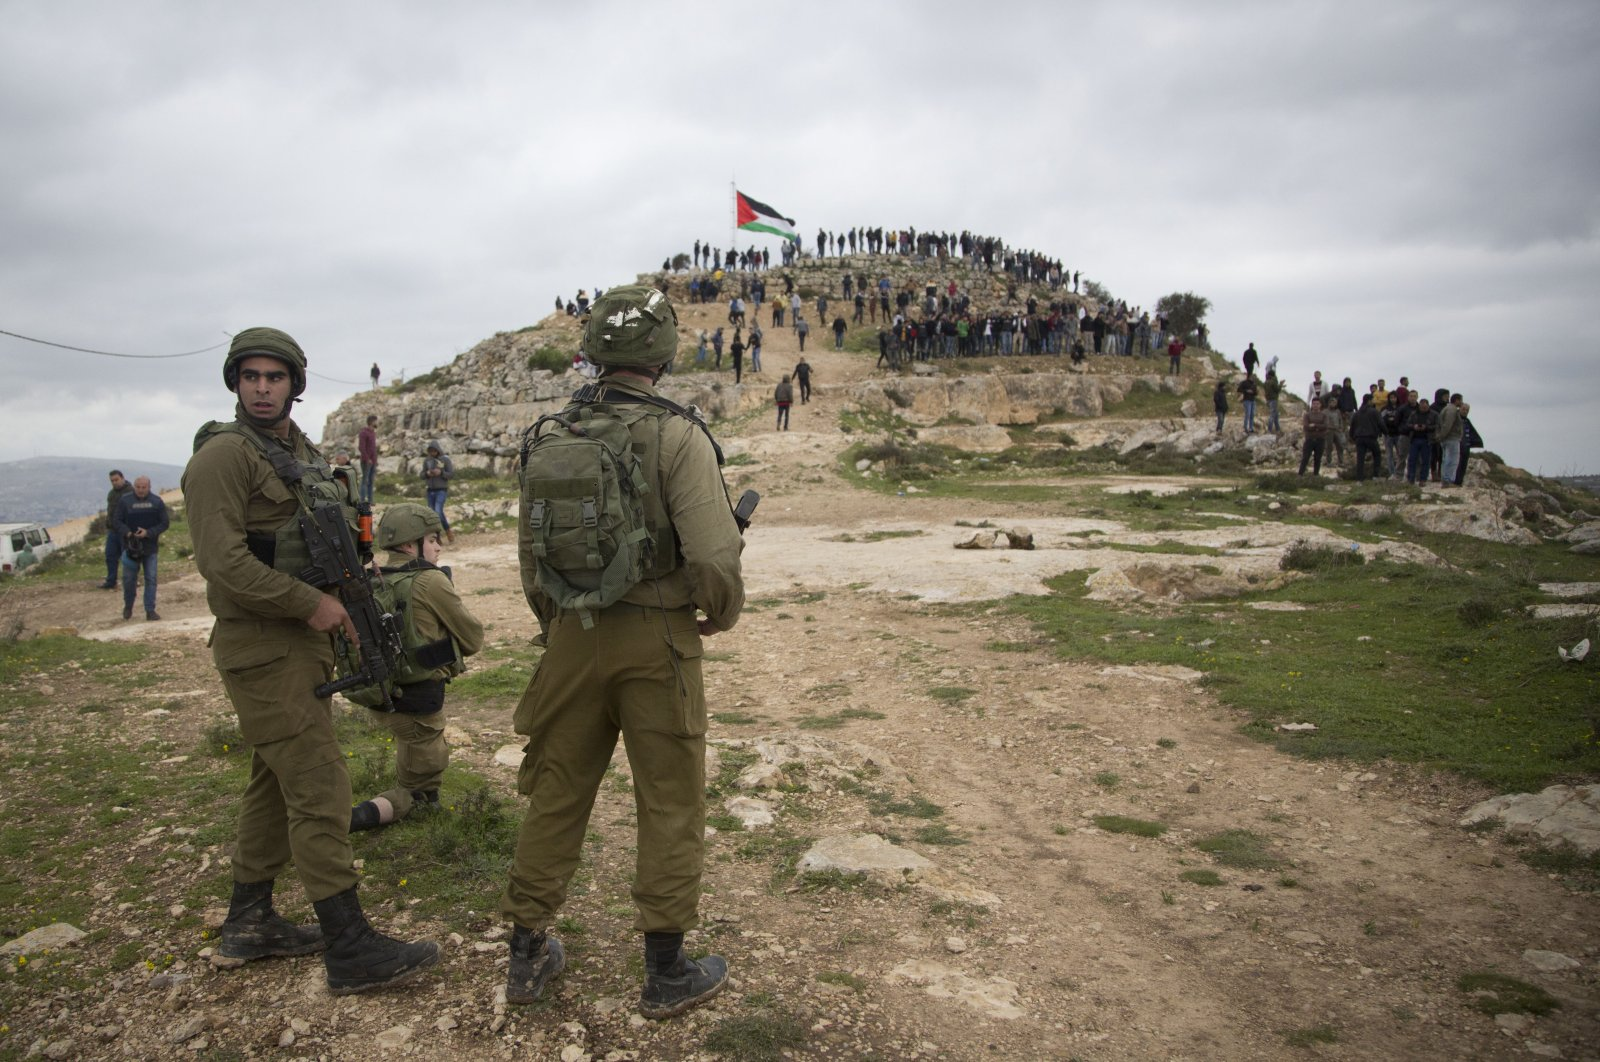 Israeli soldiers take position as Palestinian demonstrators gather during a protest against expansion of Israeli settlements, in the West Bank village of Beita near Nablus, Monday, March 2, 2020.(AP Photo)